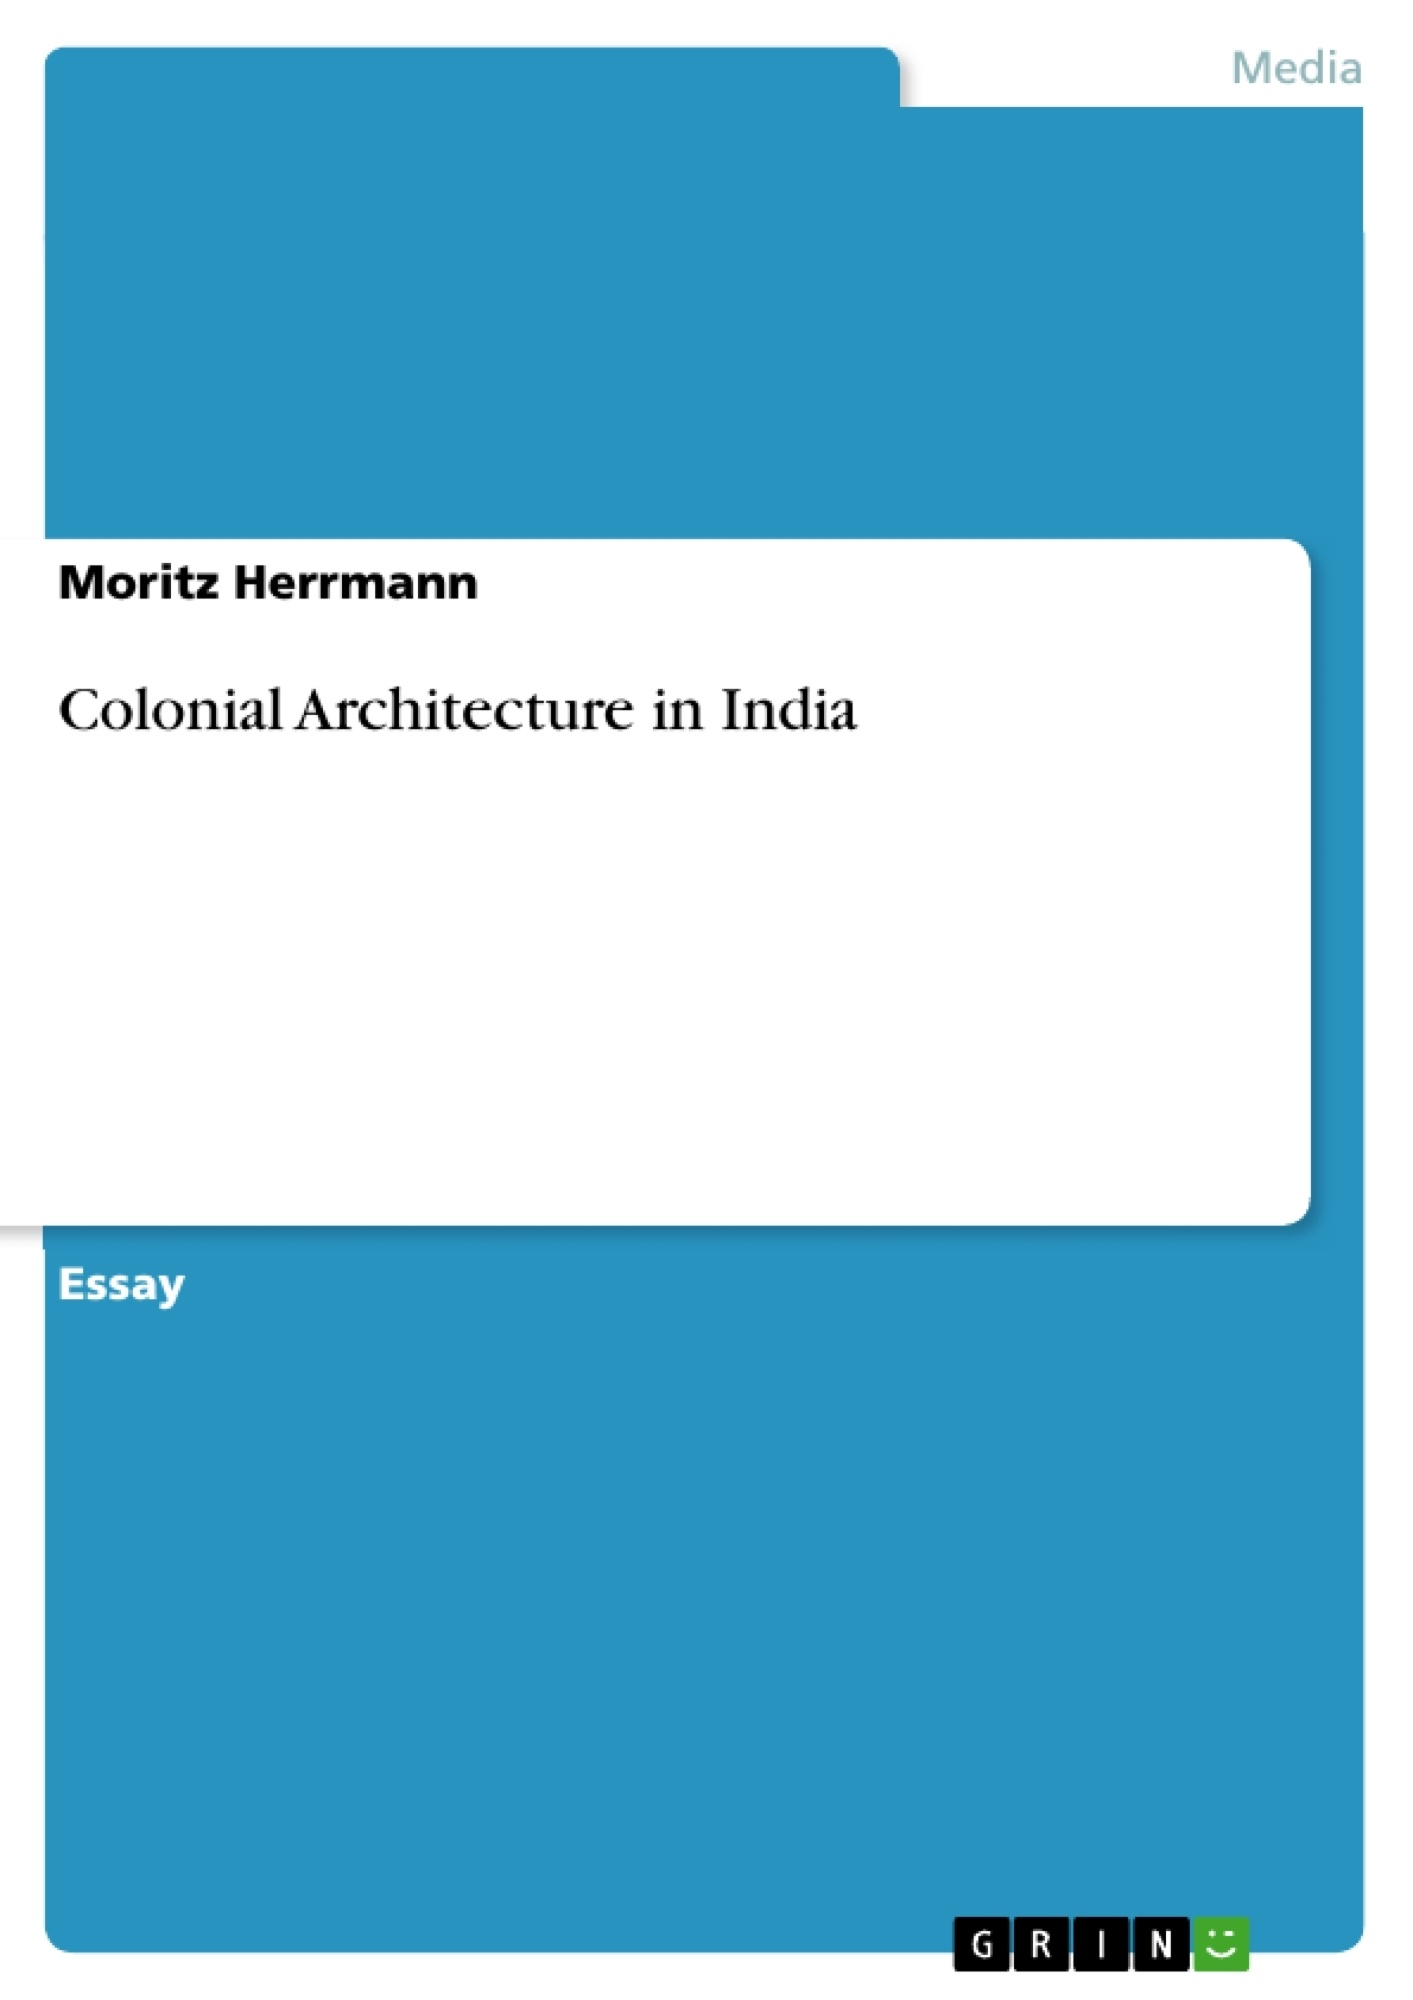 Title: Colonial Architecture in India